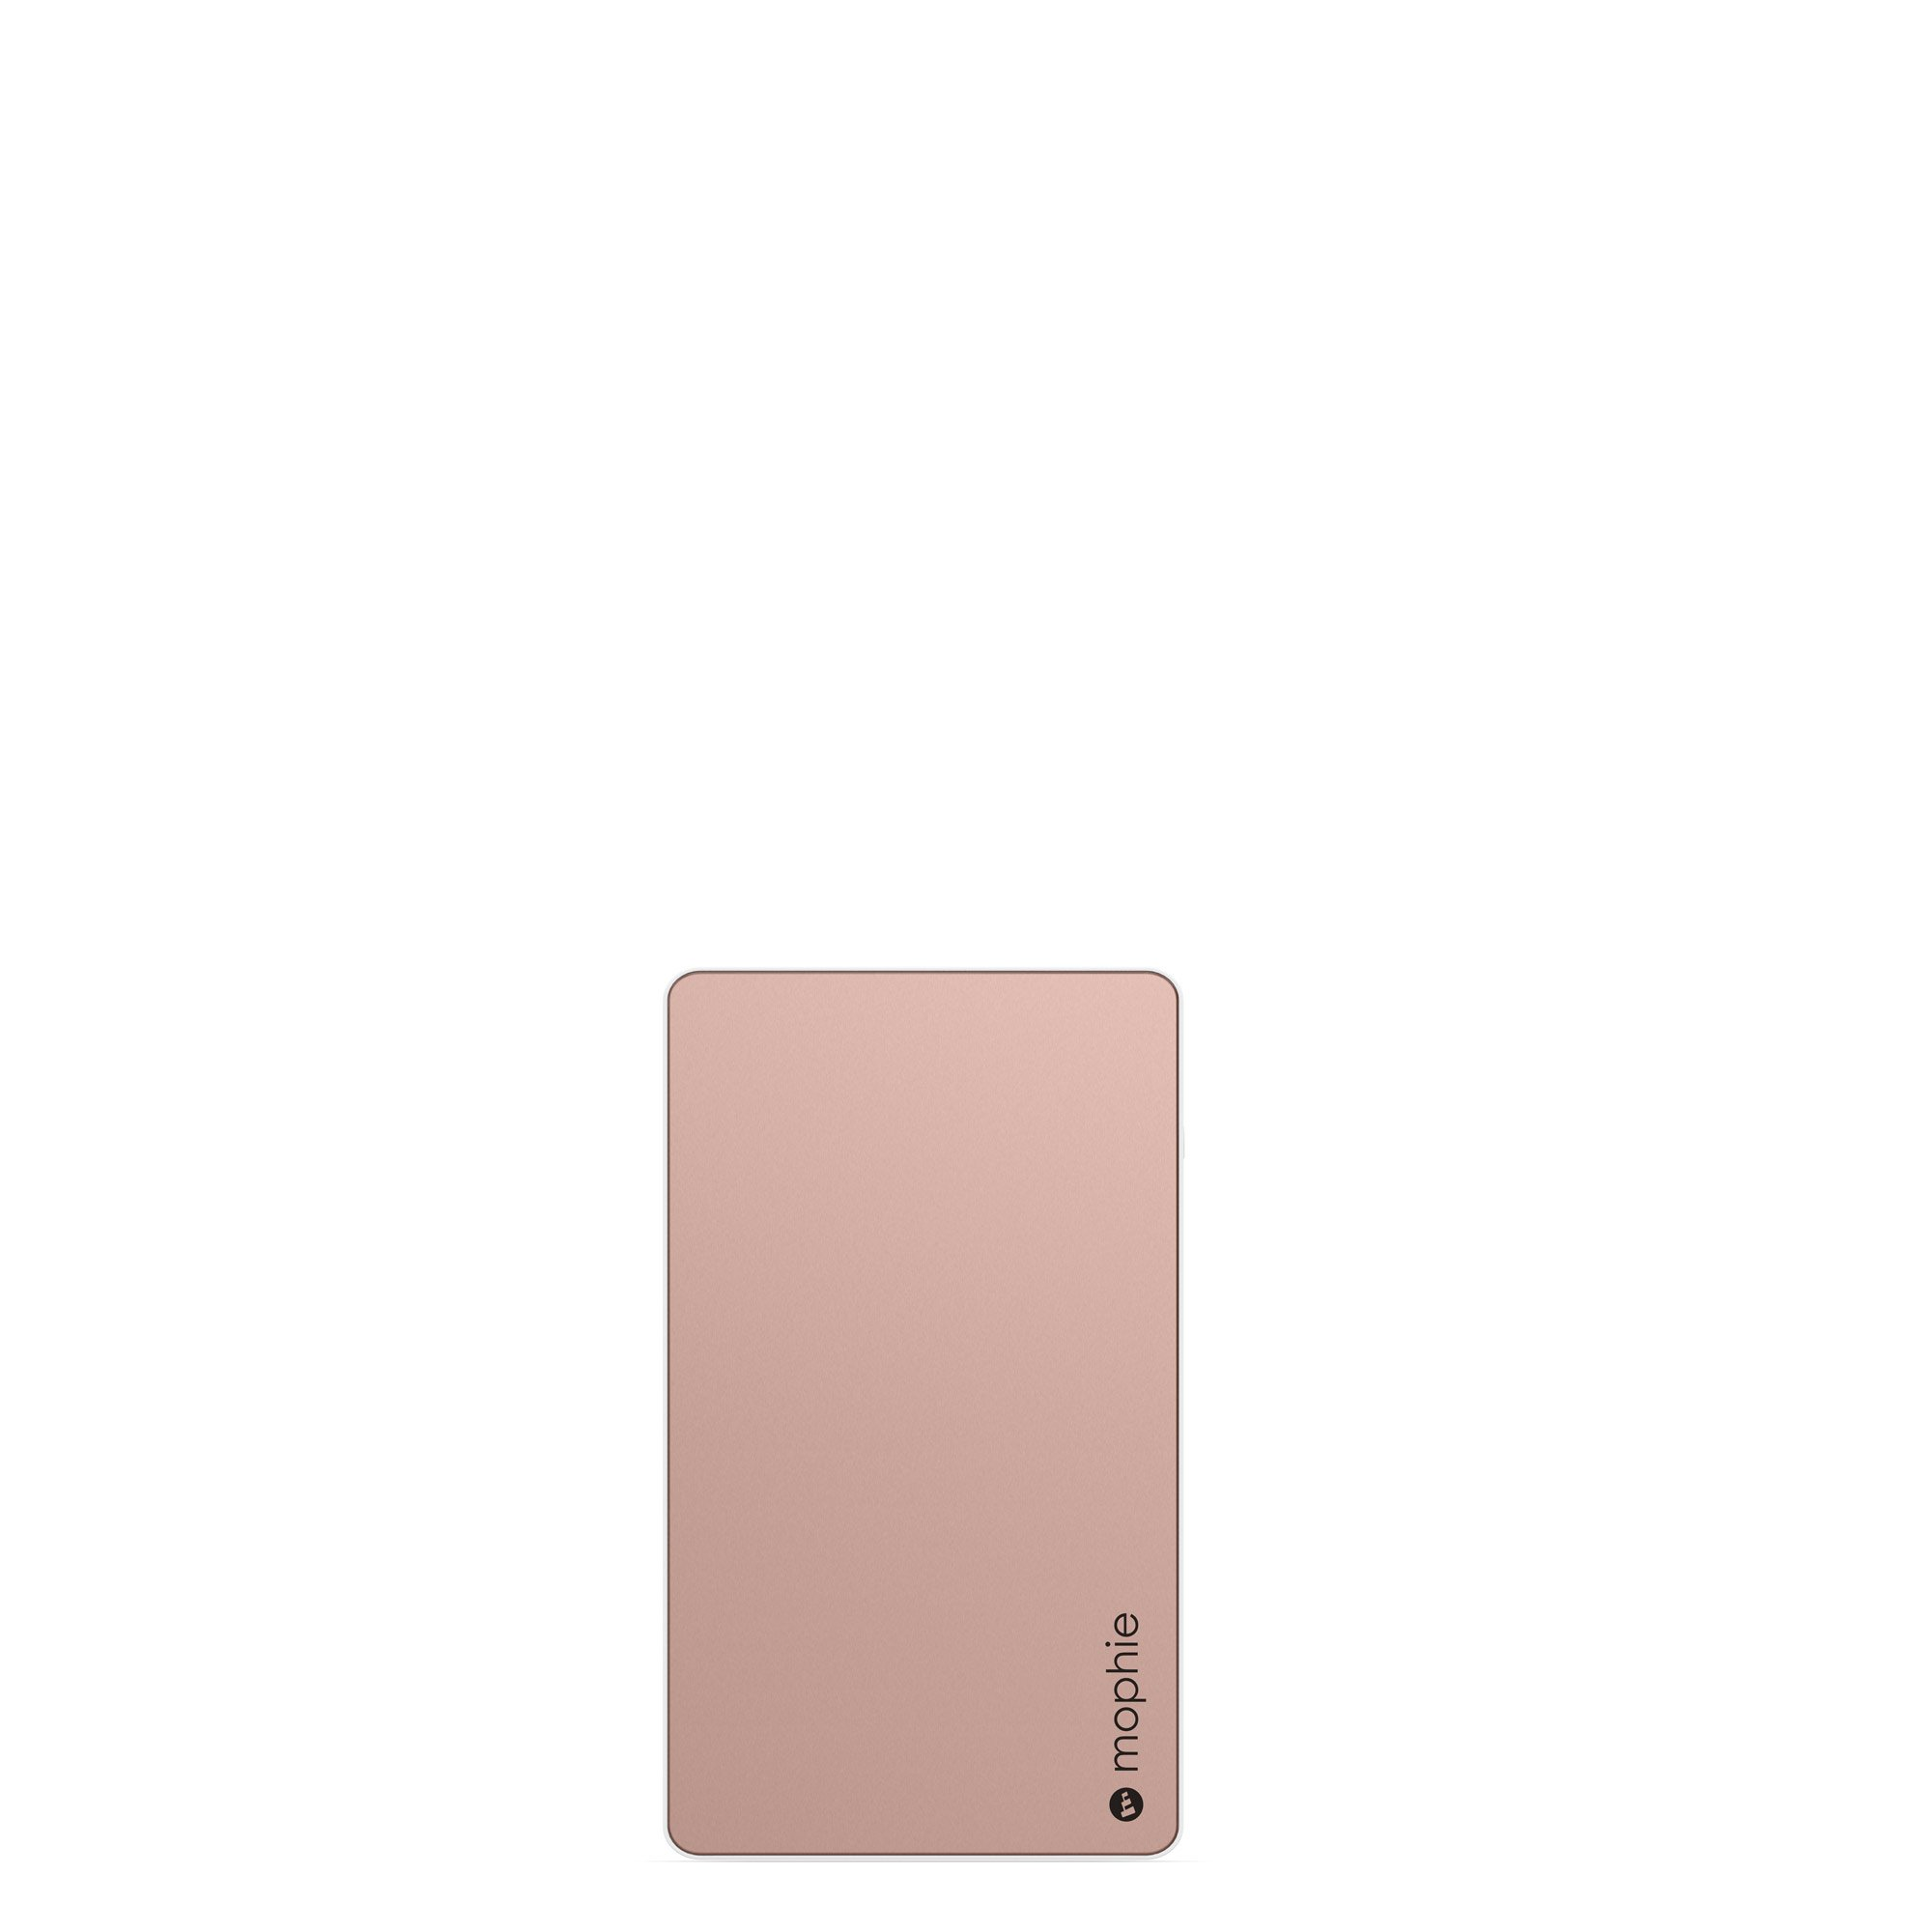 mophie powerstation External Battery for Universal Smartphones and Tablets (6,000mAh) - Rose Gold